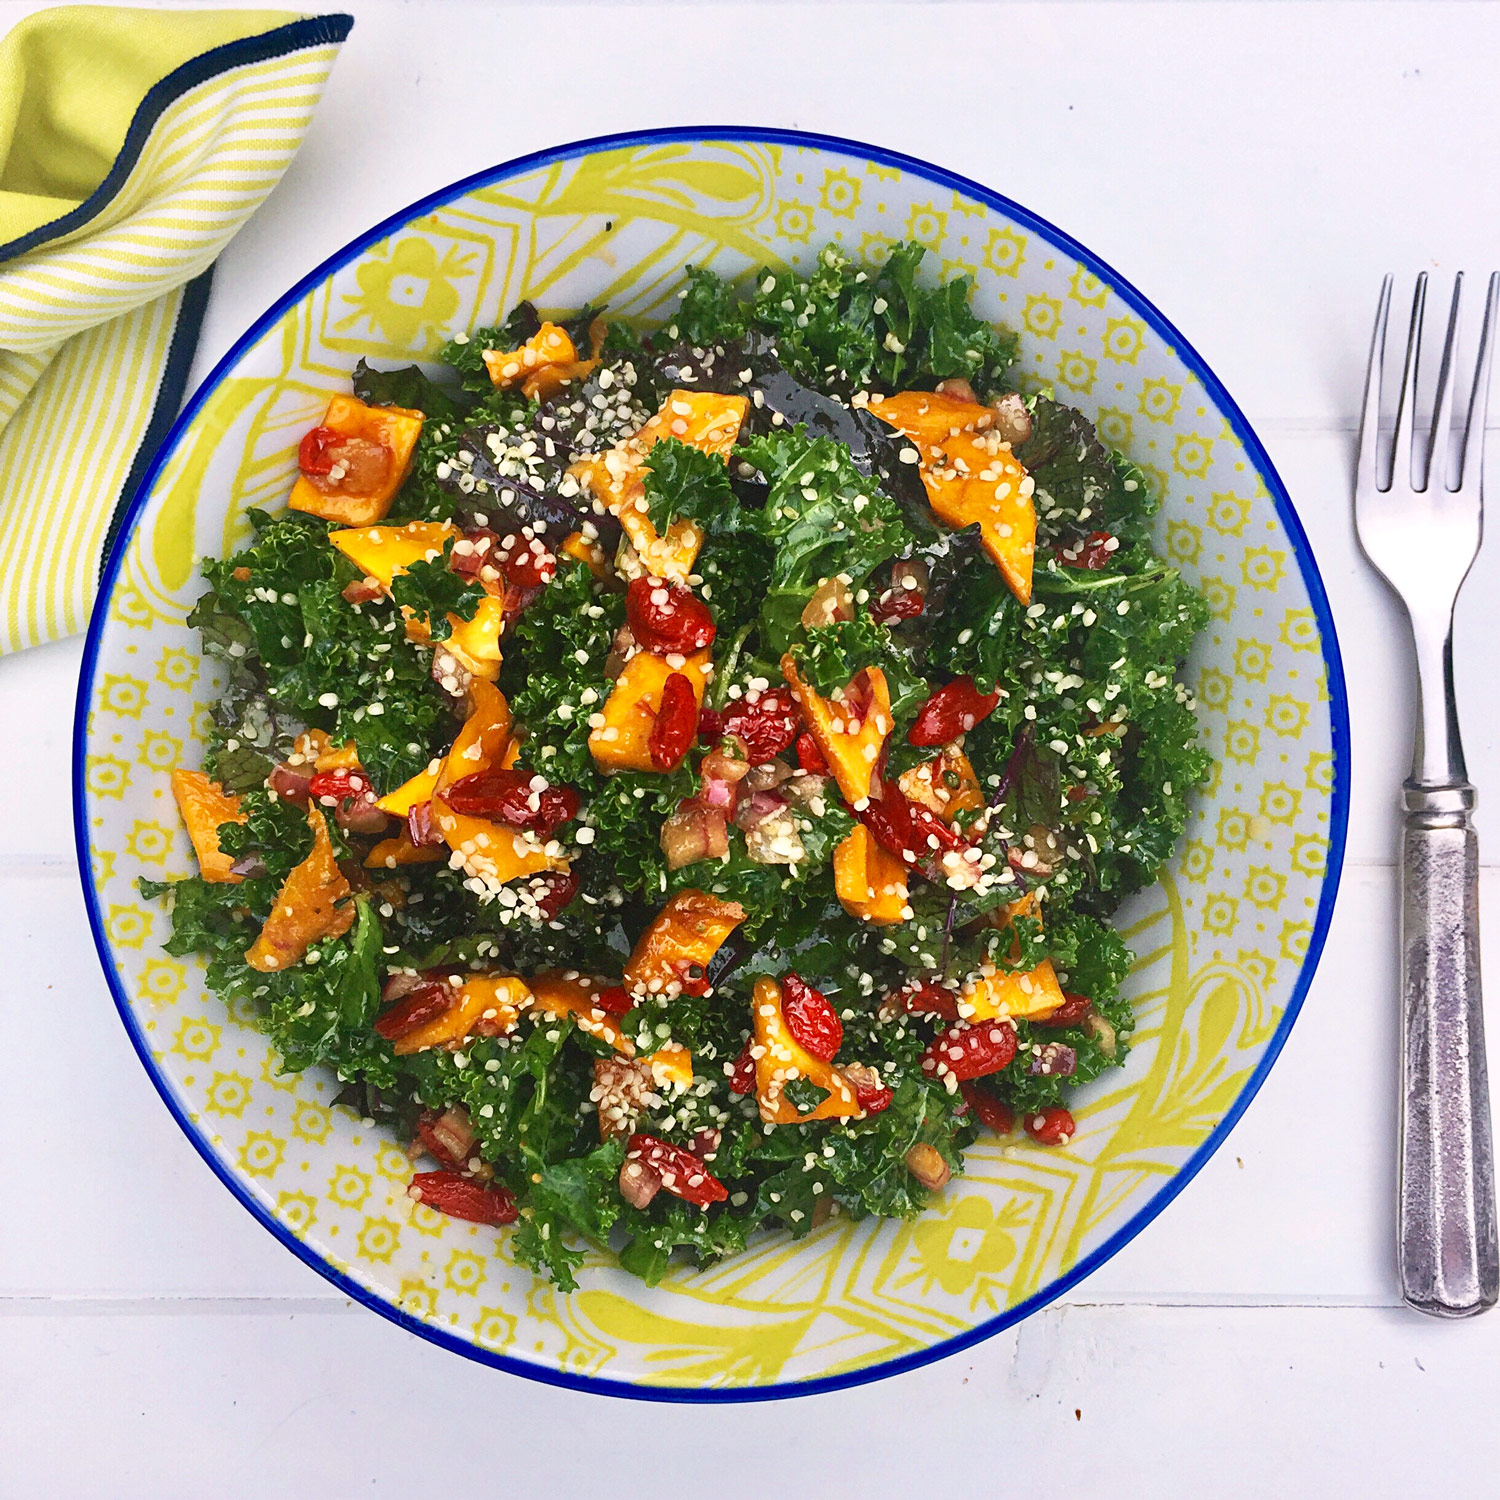 Tangy Kale Salad